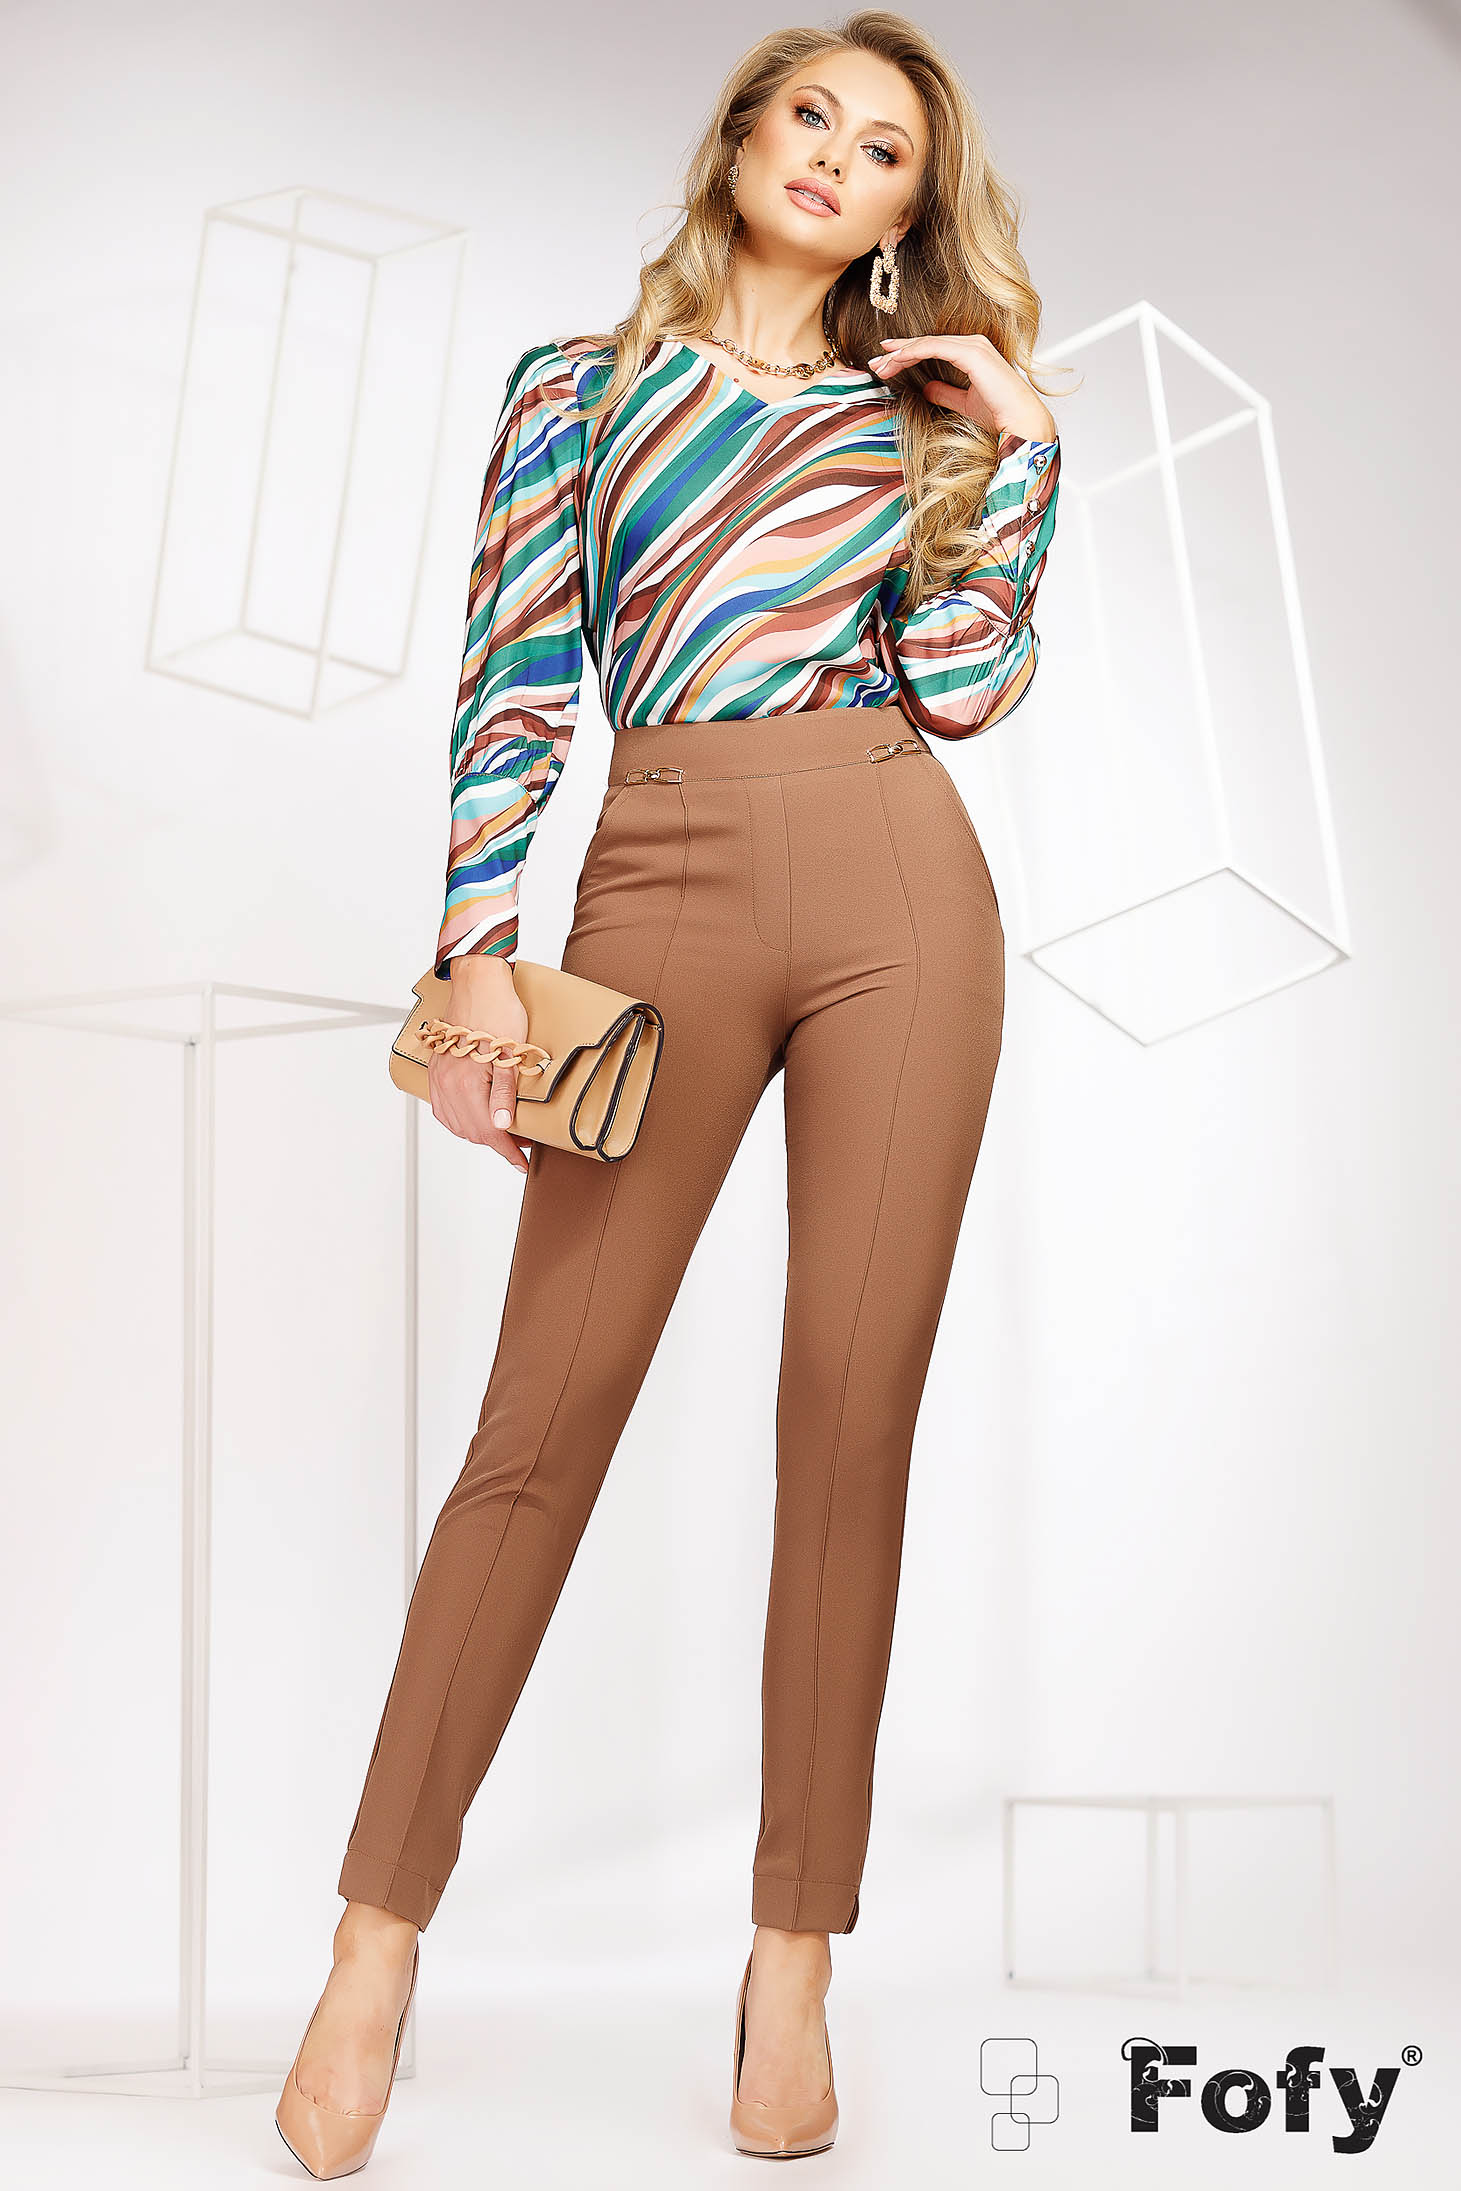 Brown trousers office conical medium waist thin fabric with metal accessories lateral pockets